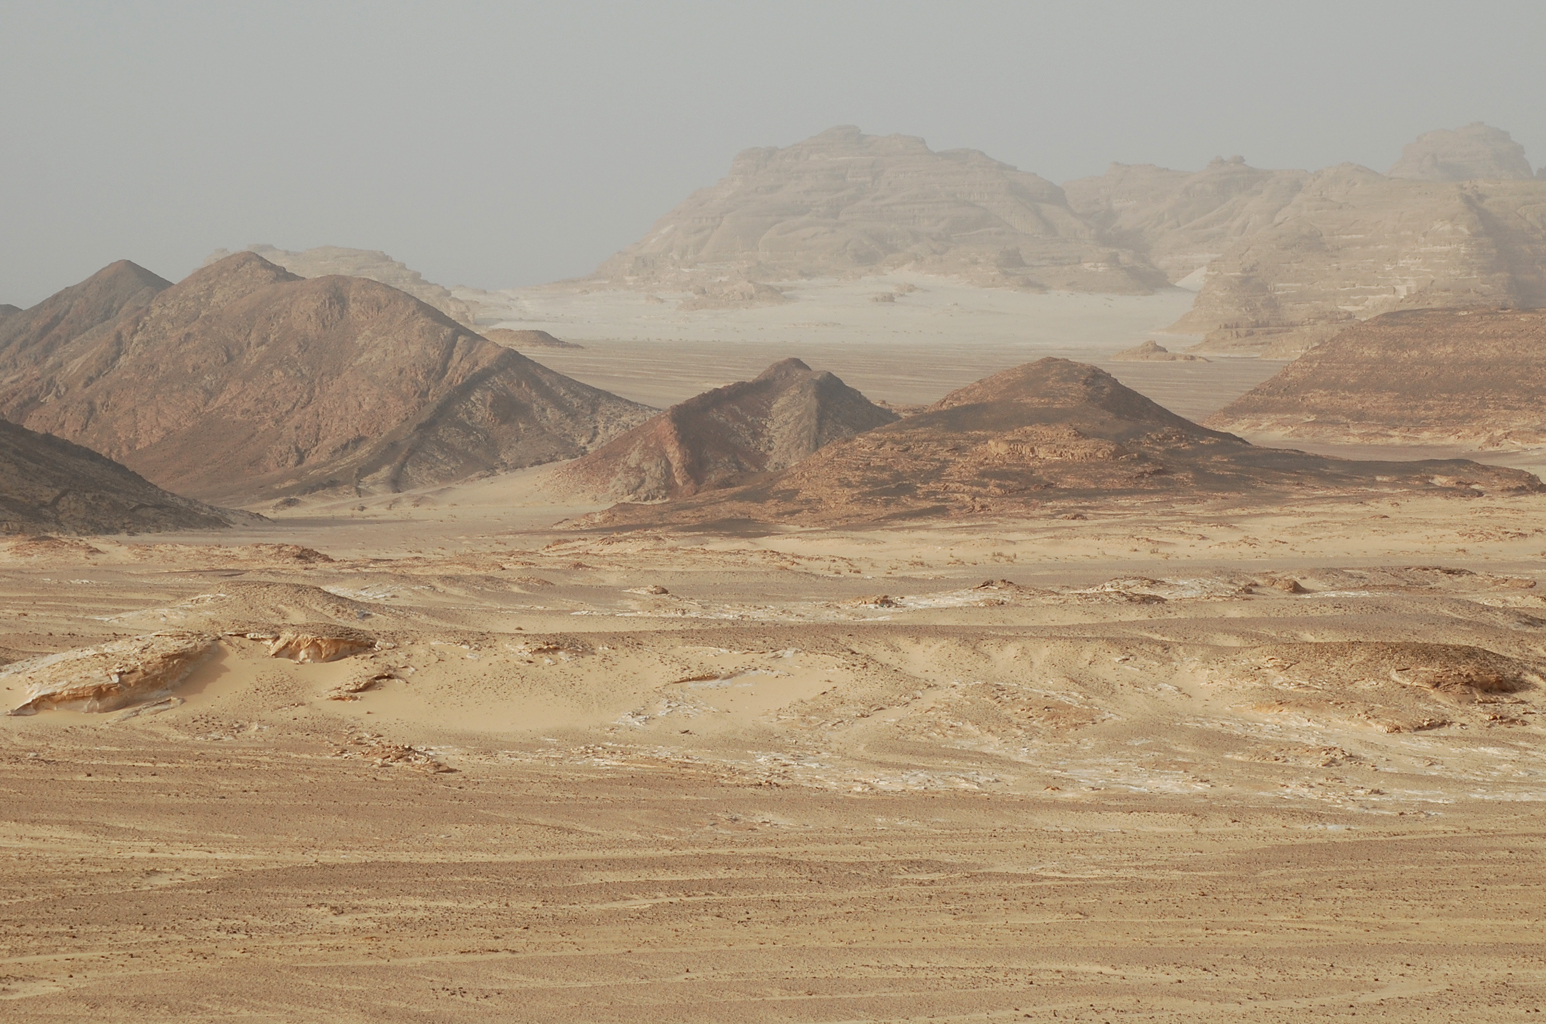 https://upload.wikimedia.org/wikipedia/commons/f/f7/Sinai_desert.jpg